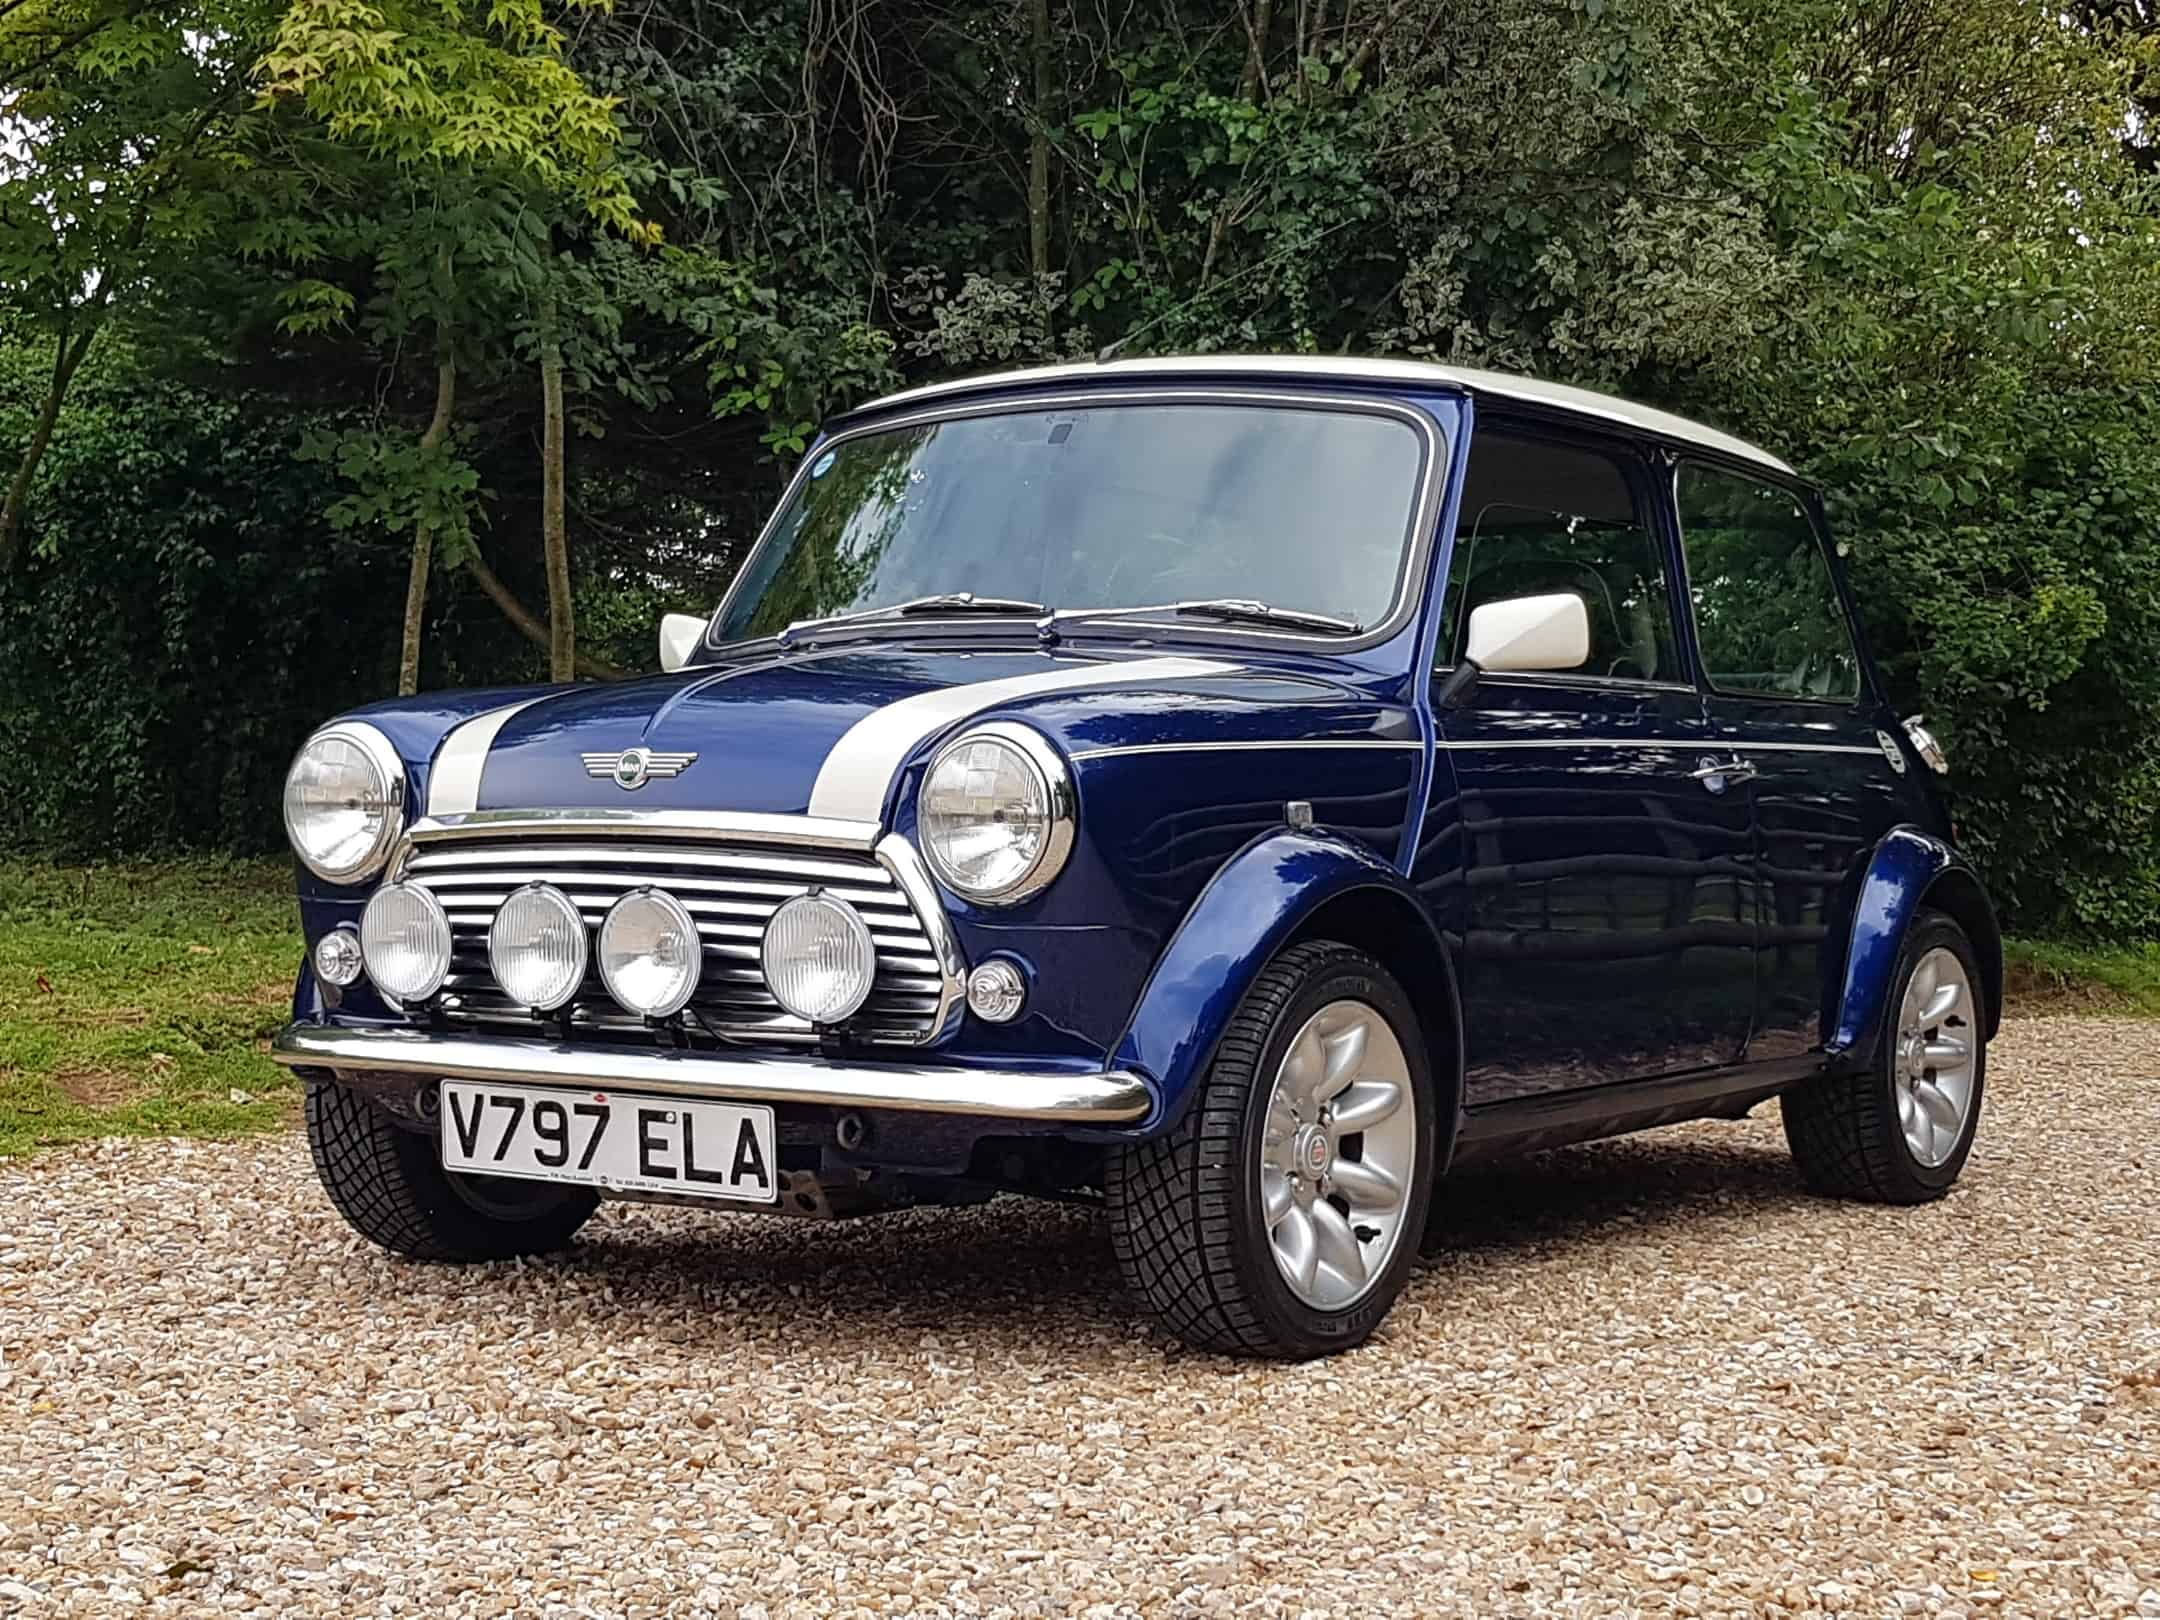 ** NOW SOLD ** Stunning Mini Cooper Sport On Just 5570 Miles From New!